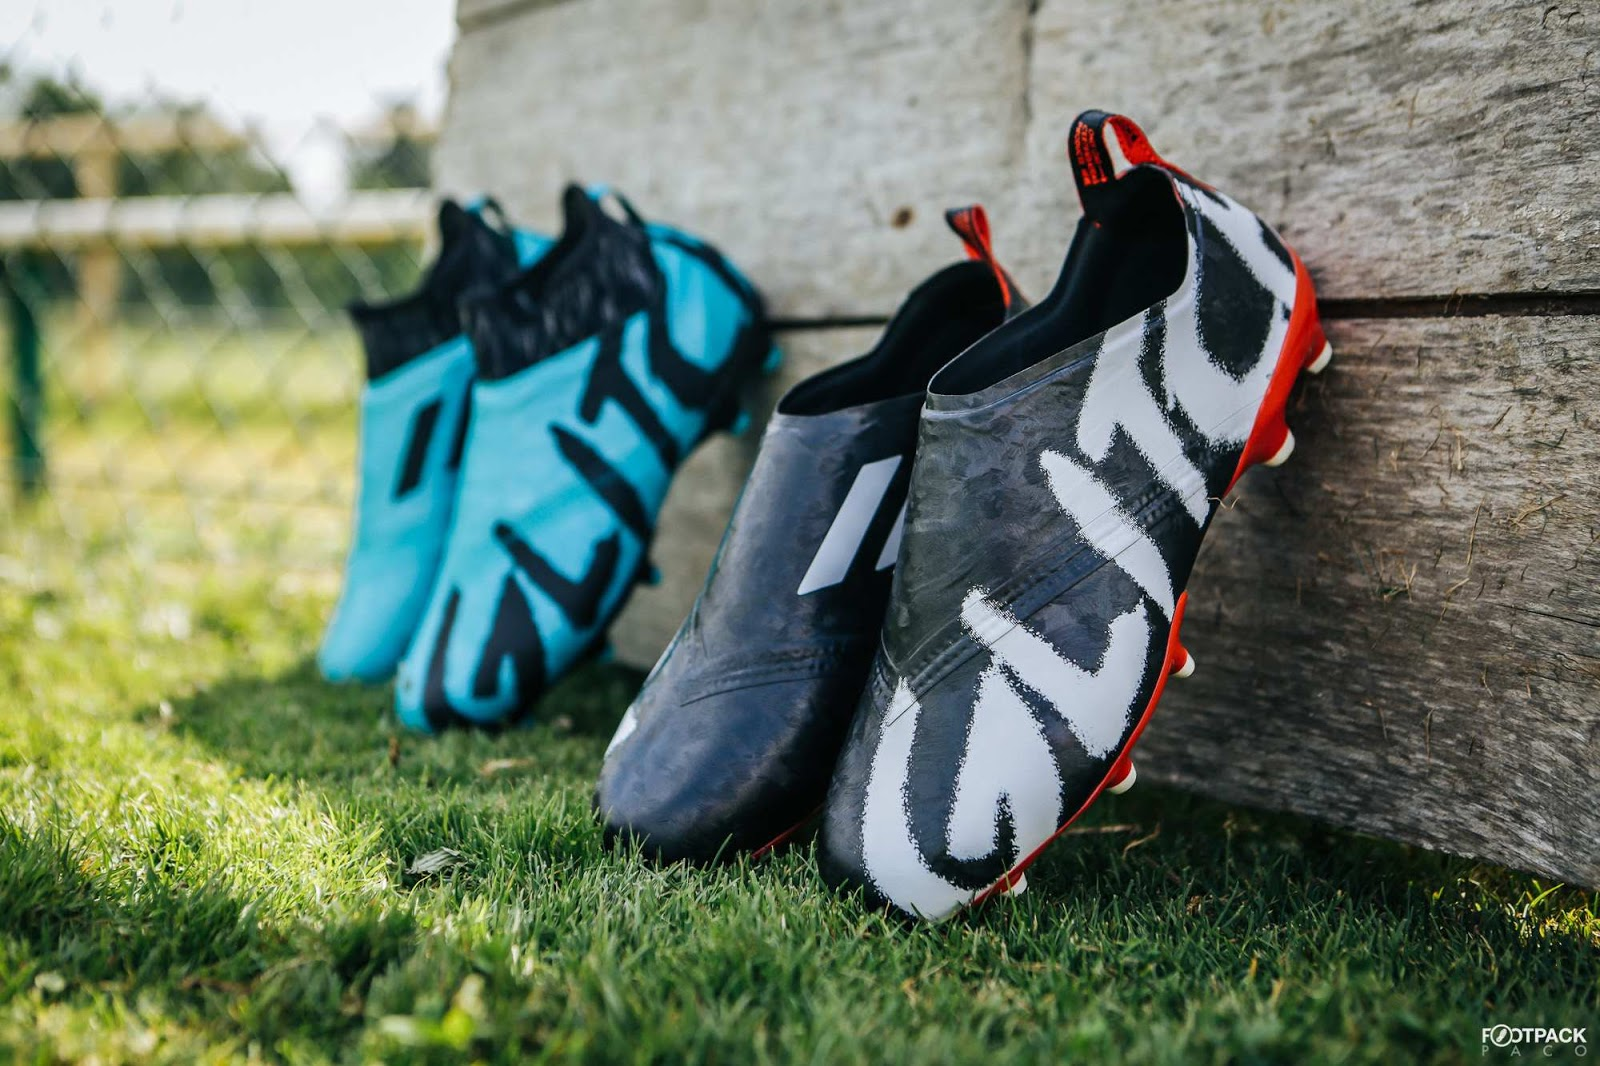 Adidas Glitch 2018 19 Devo Skin Boots Pack Released Leaked Soccer